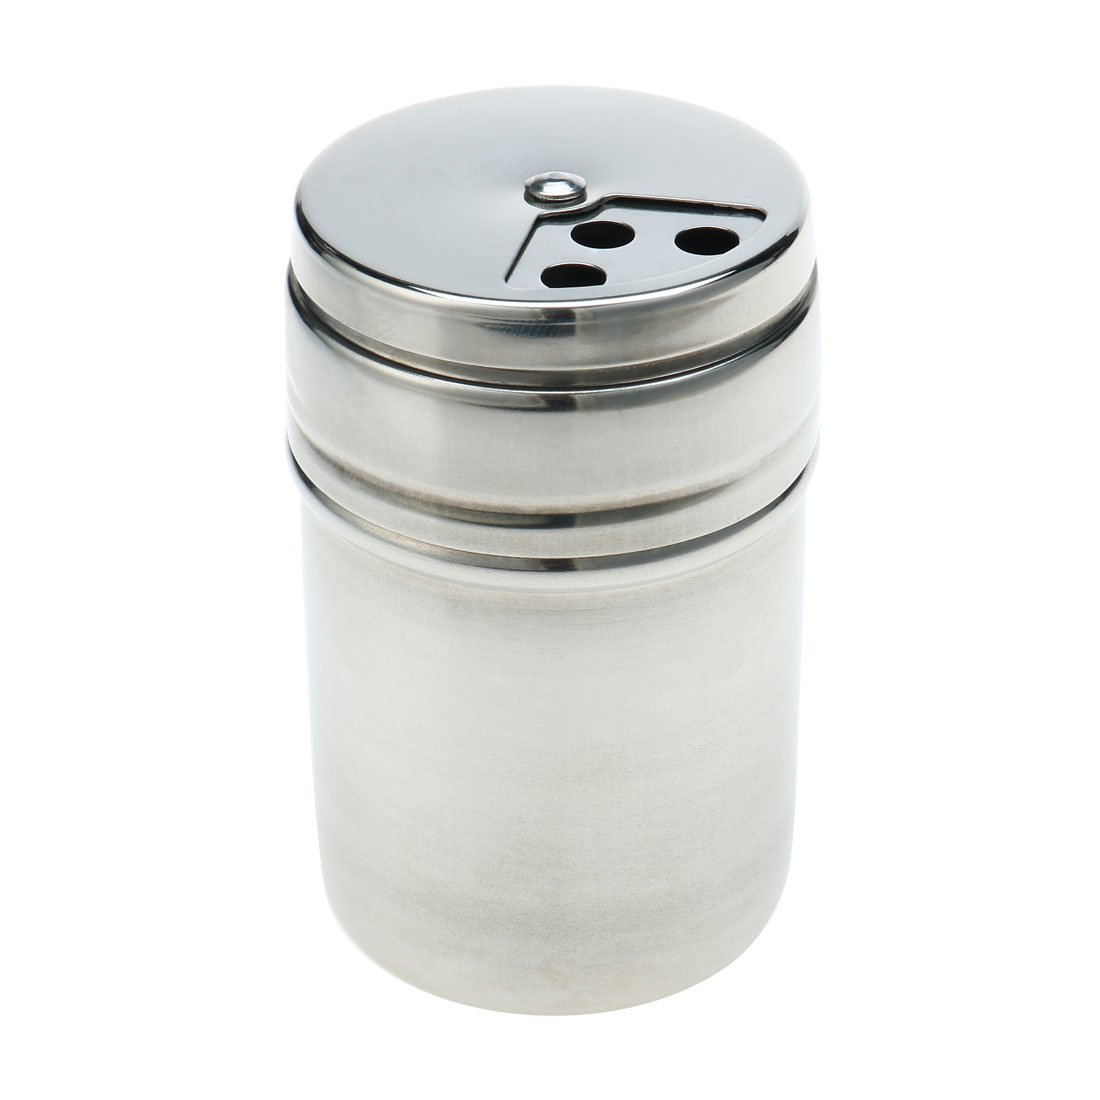 """Kitchenware Metal Adjustable Rotating Spice Pepper Shaker Seasoning Cans Condiment Box 2"""" Dia"""